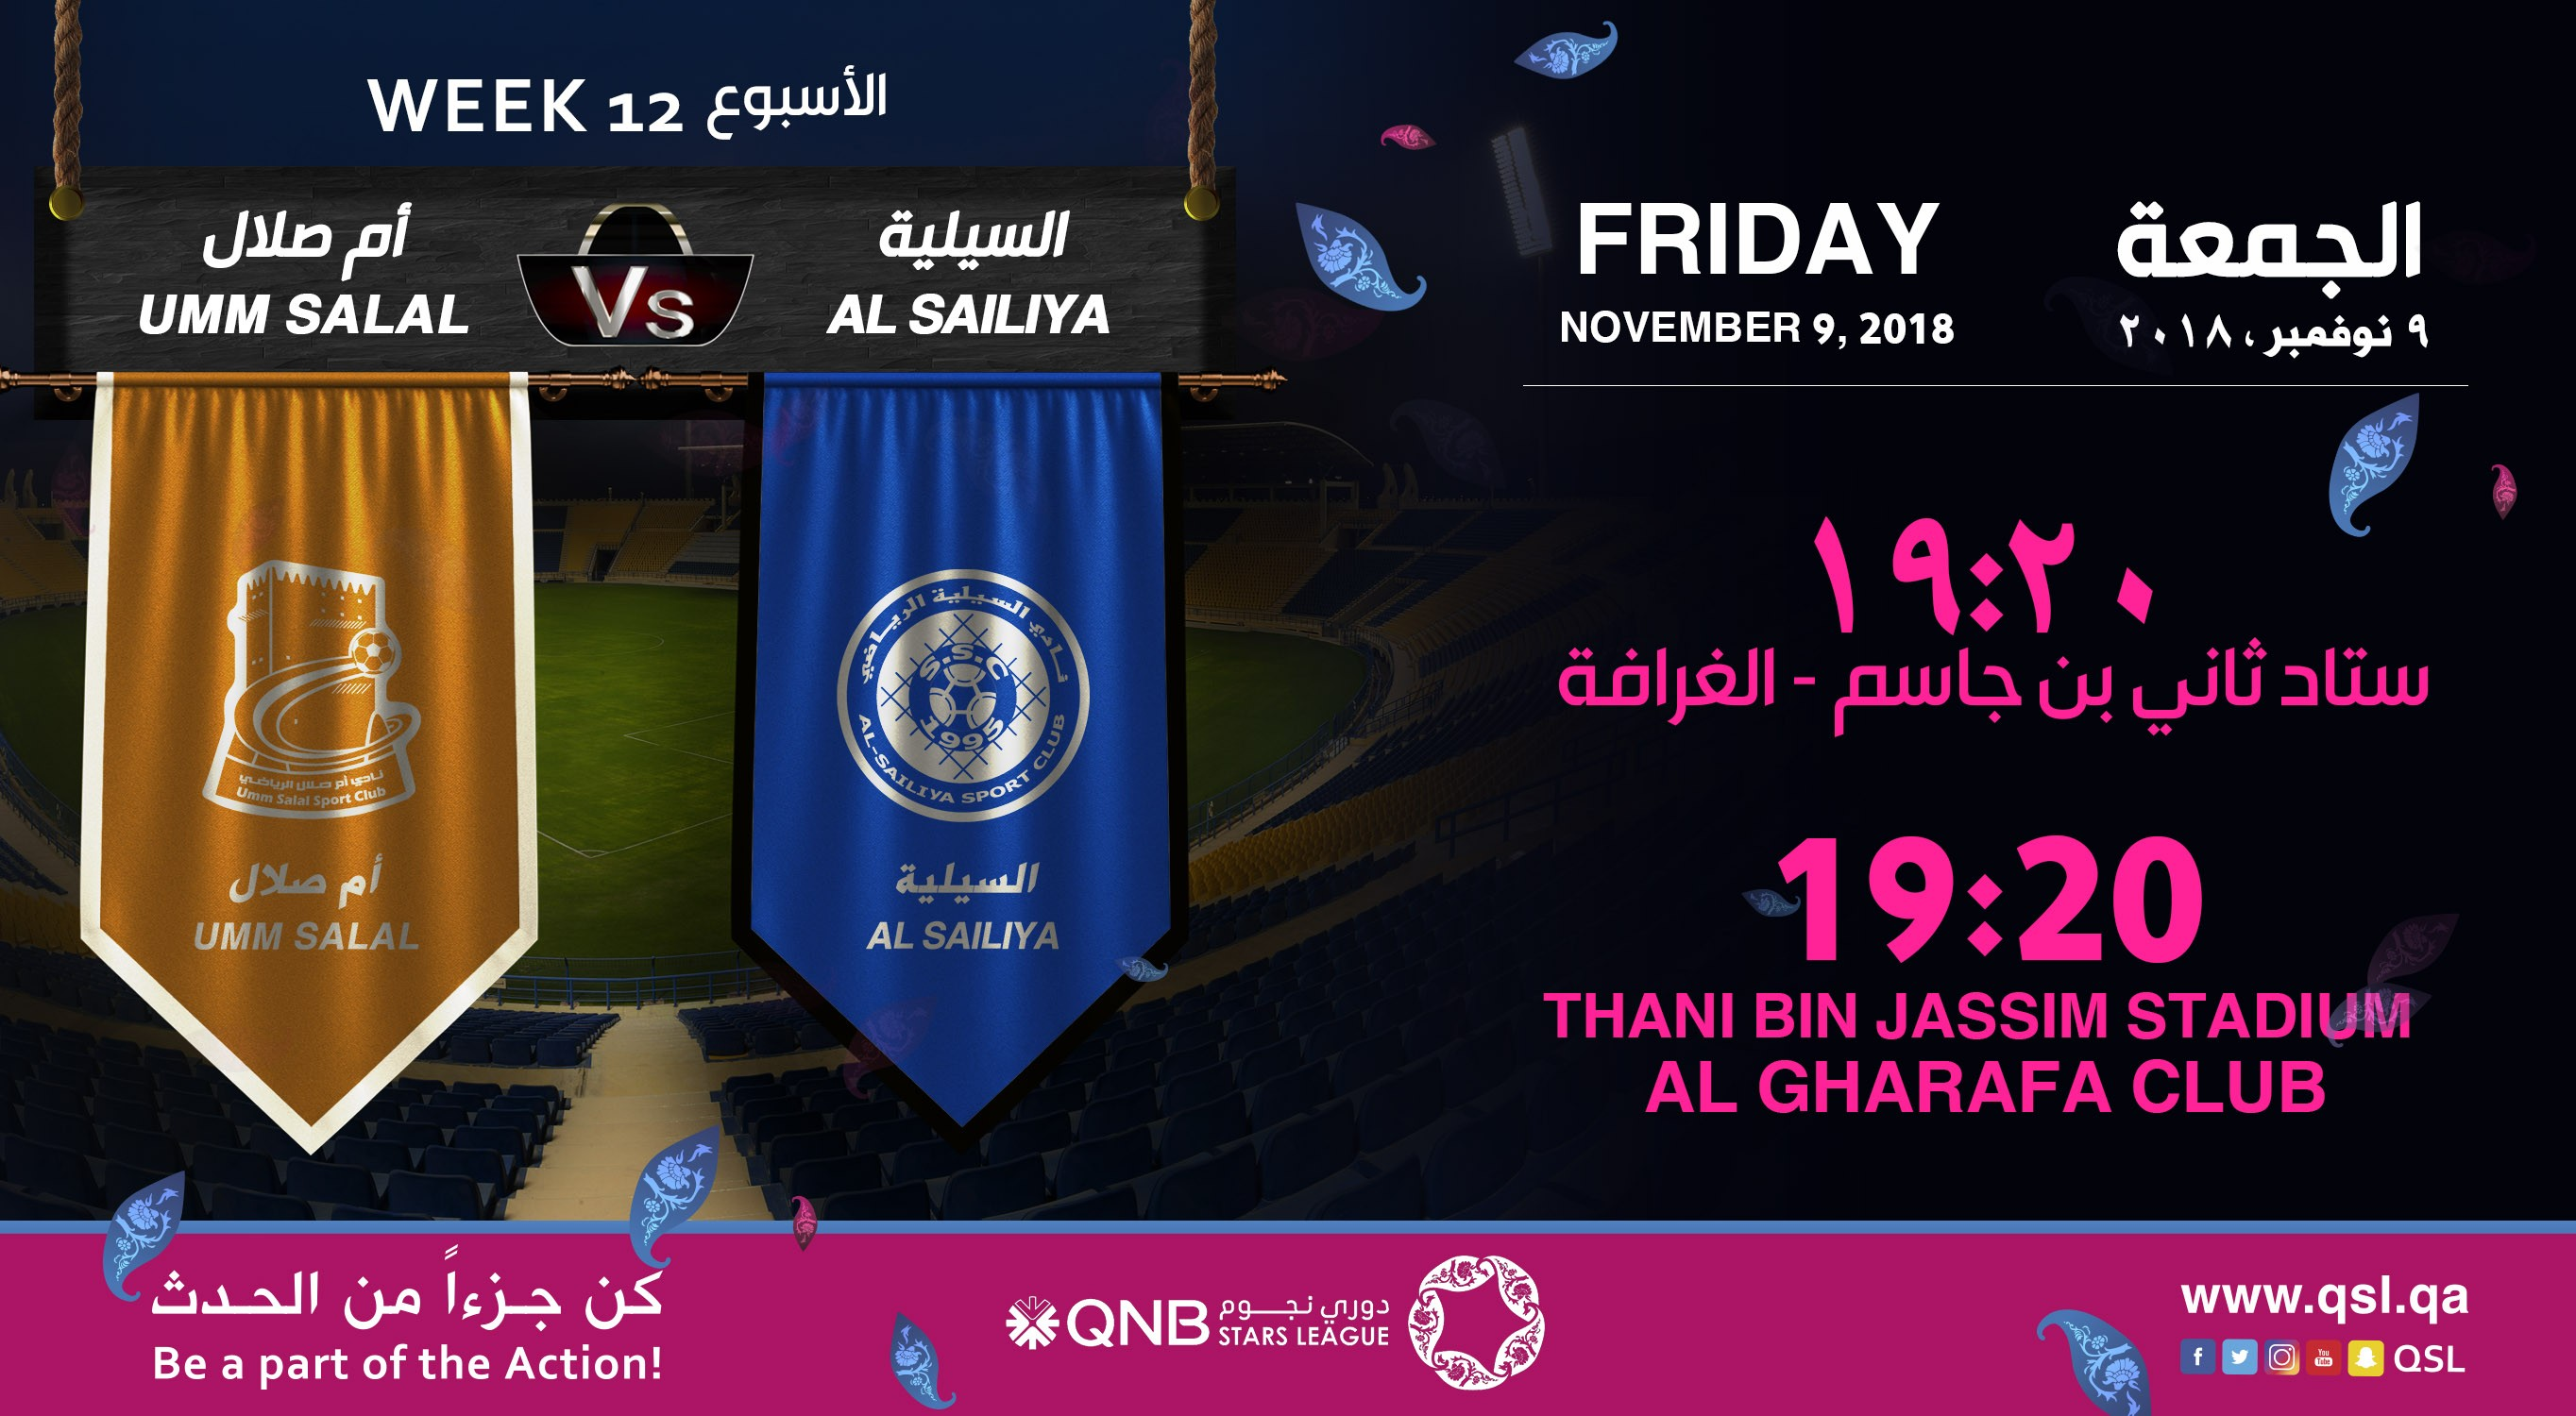 QNB Stars League Week 12 — Umm Salal vs Al Sailiya